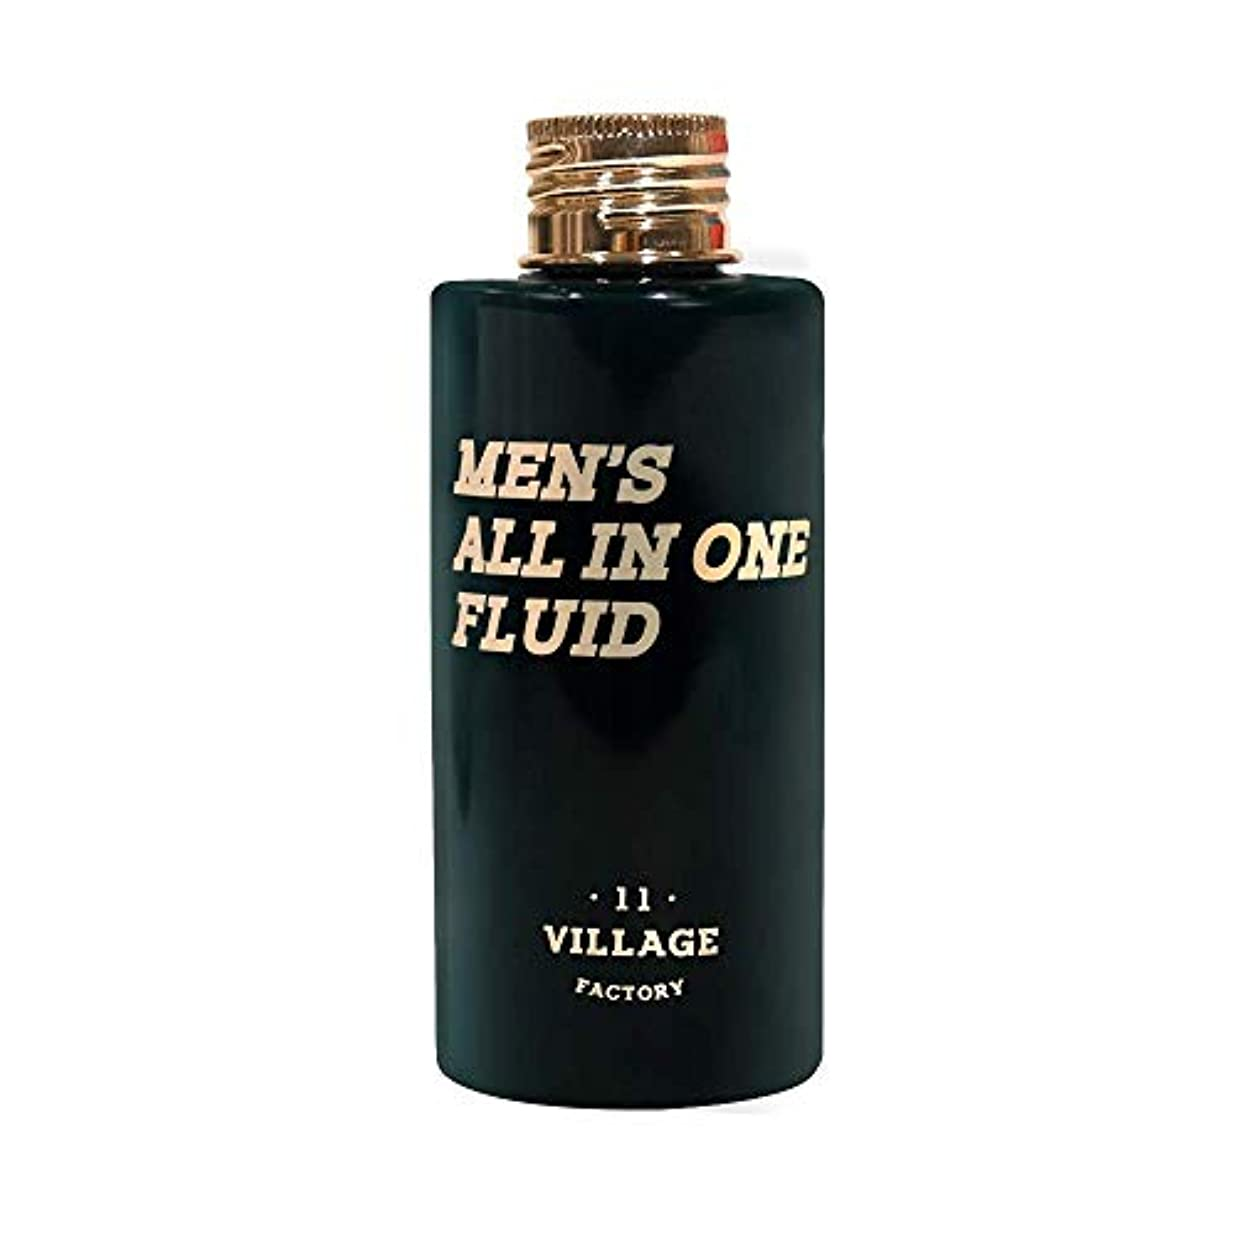 設計慣性愛撫[VILLAGE 11 FACTORY] メンズオールインワンフルイドMen's All-in-one Fluid 150ml